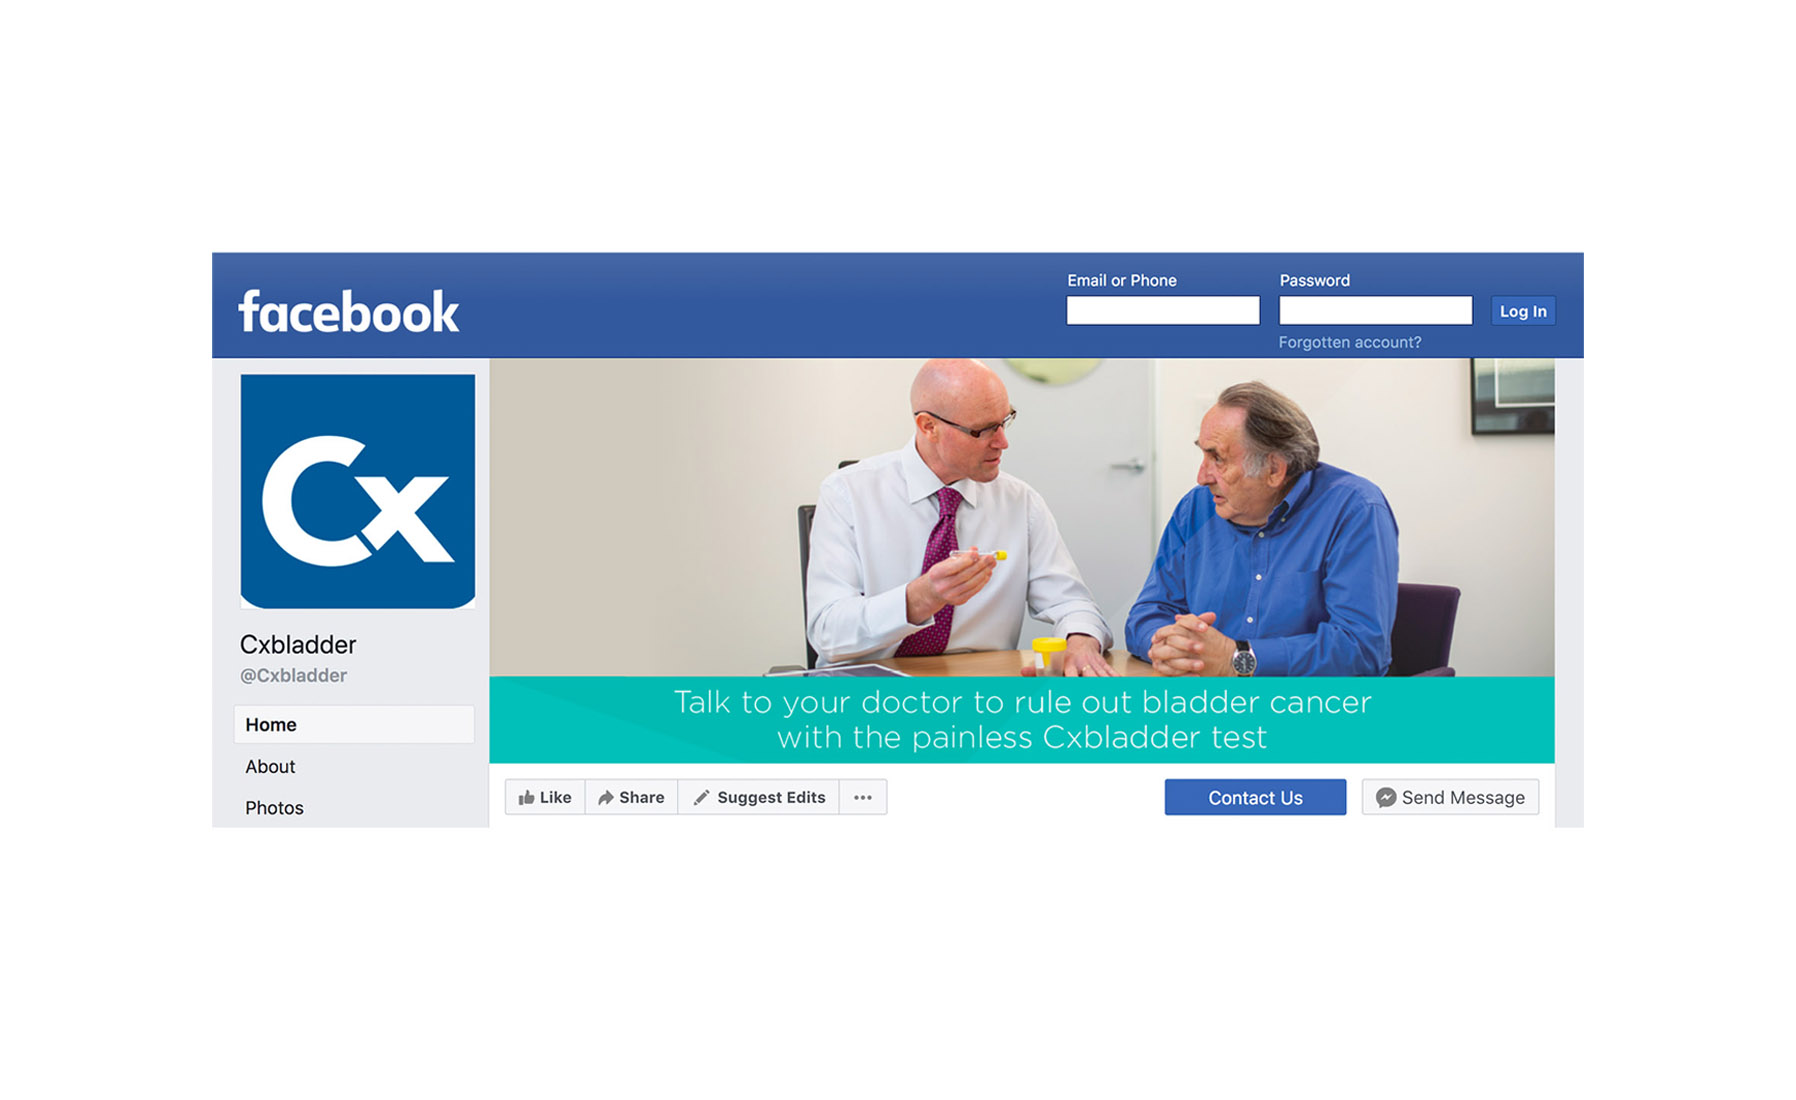 Facebook Cover Cxbladder Design by Cre8tive Dunedin